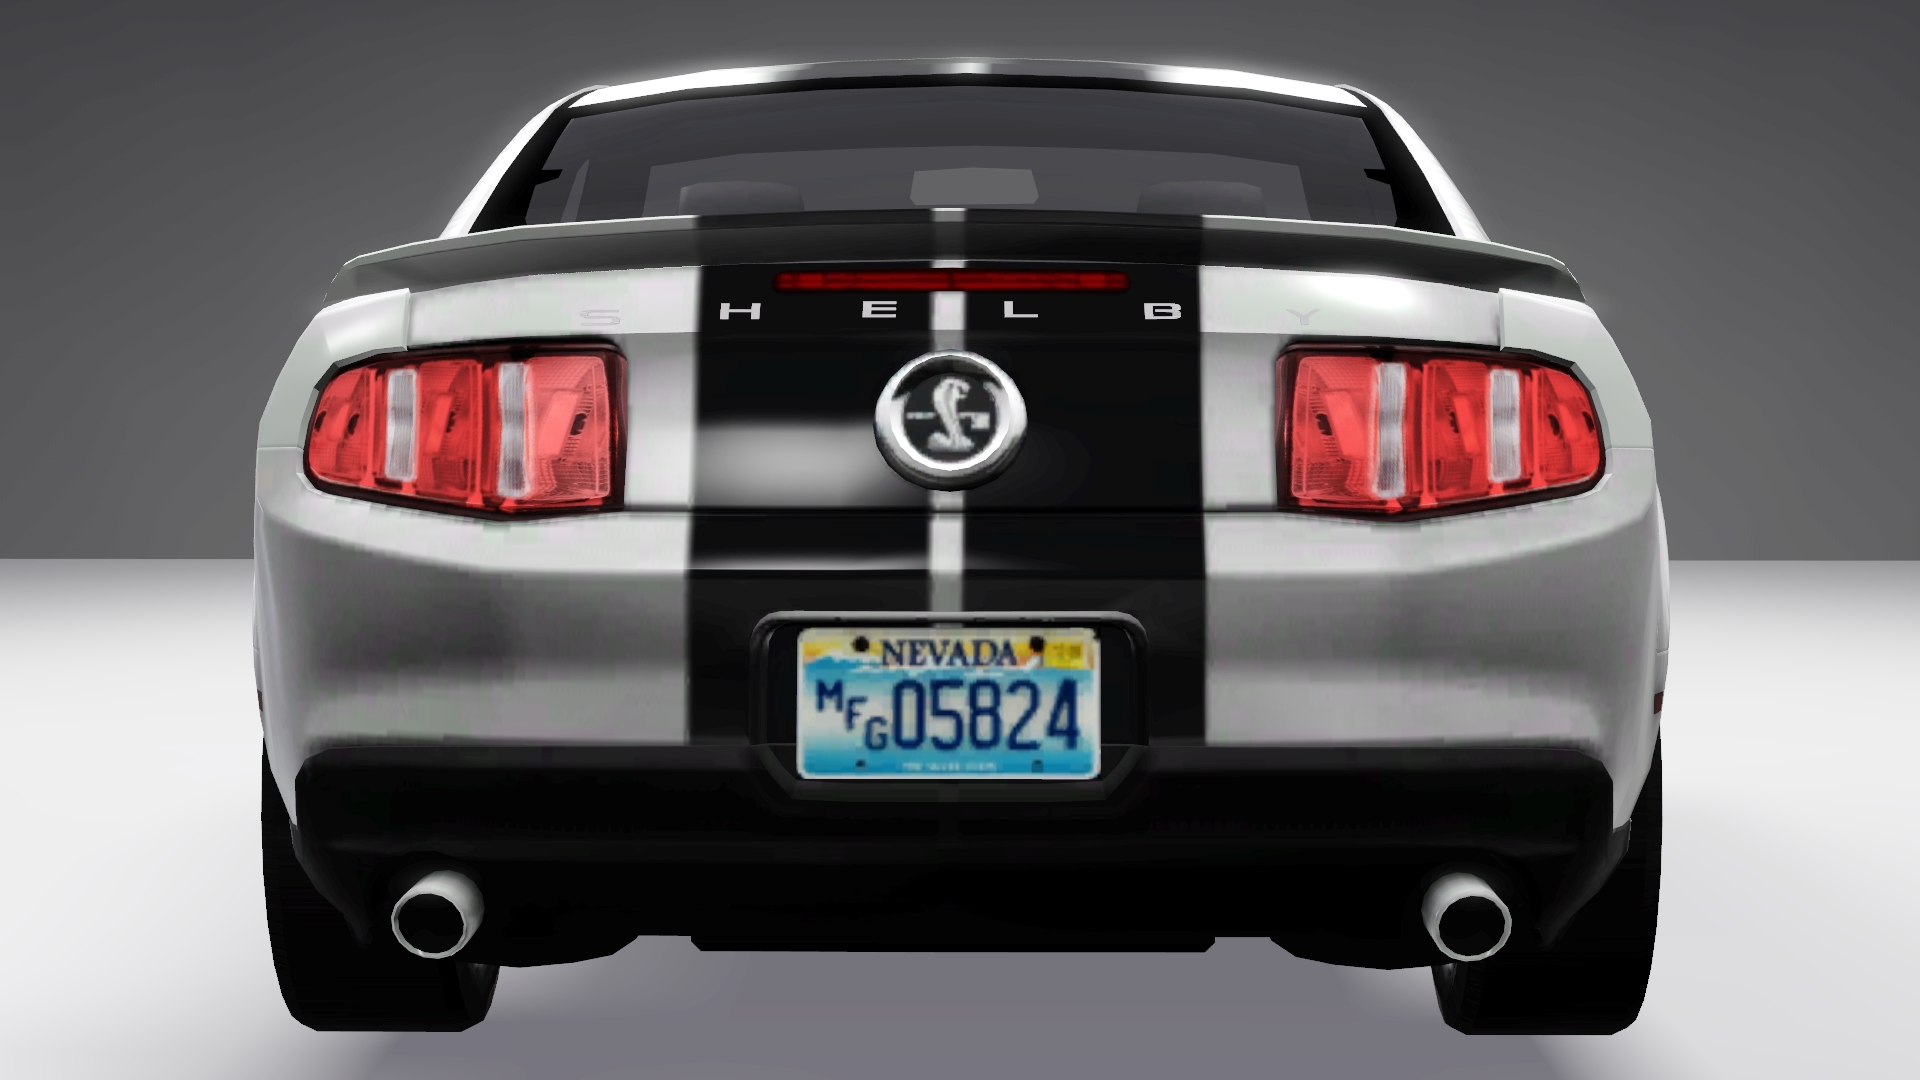 Most Viewed - 2010 Ford Mustang Shelby G.T.500 by Fresh-Prince